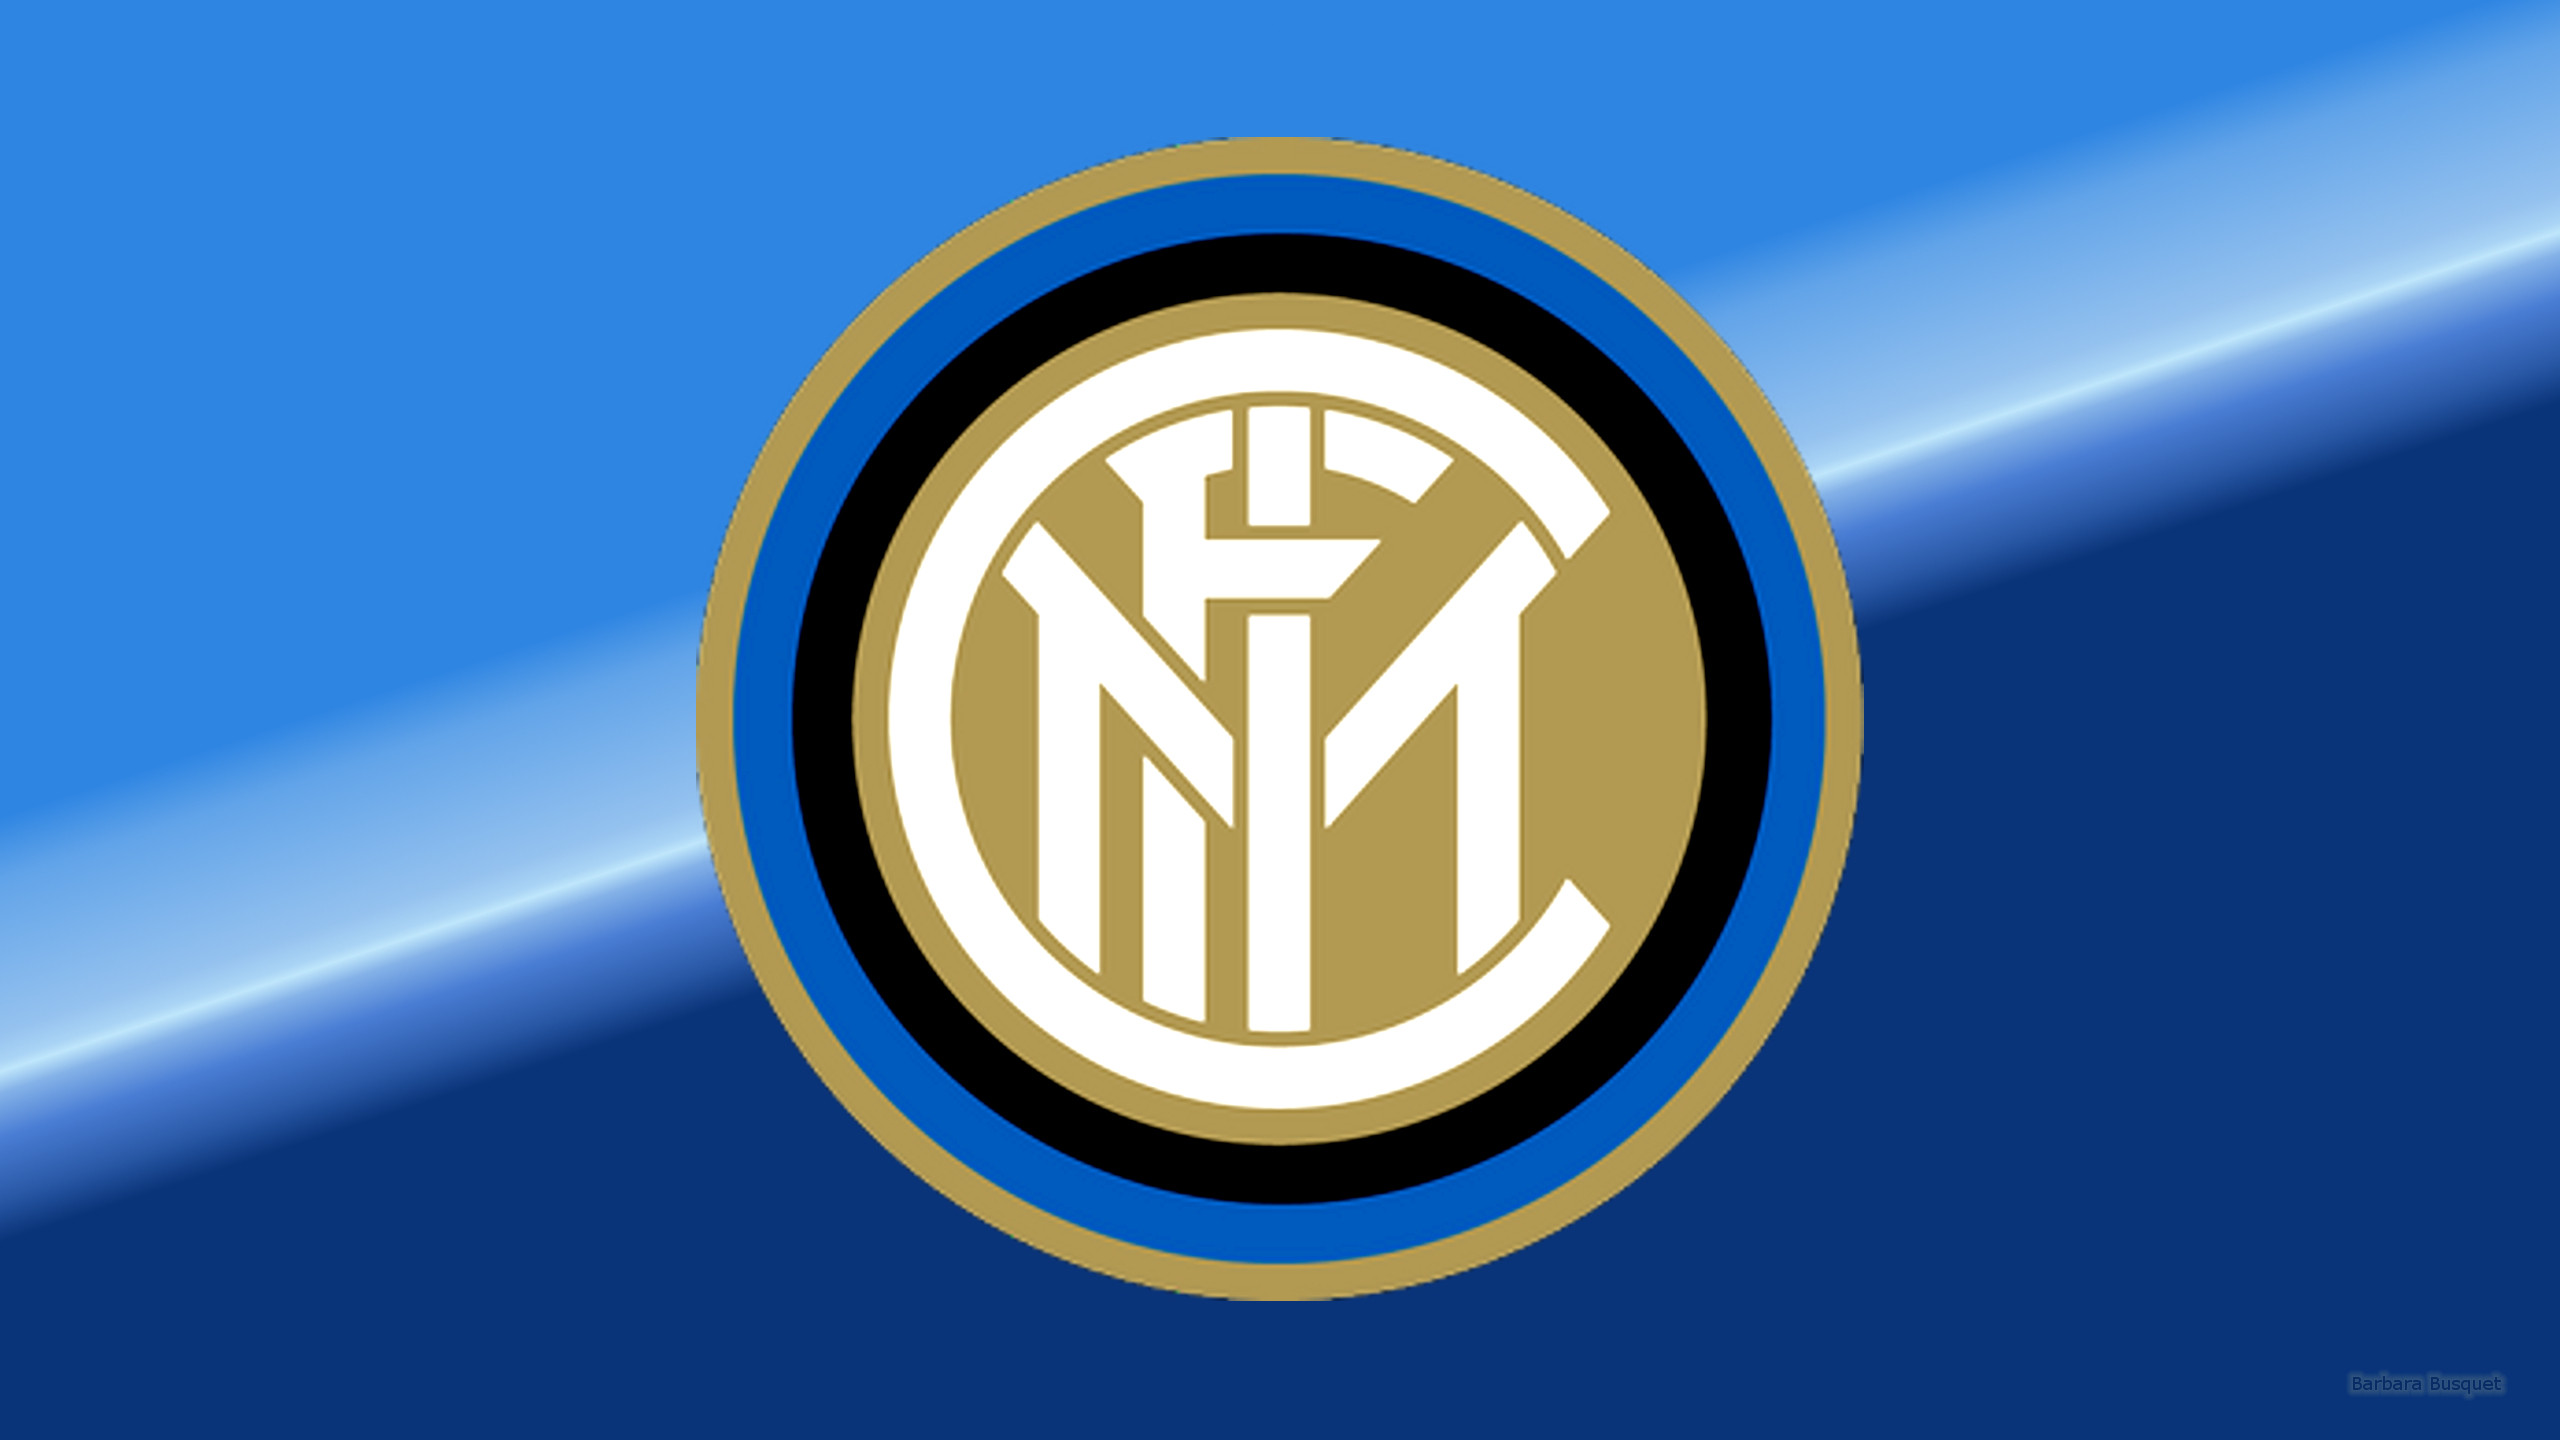 Black And Yellow Wallpaper Inter Milan Internazionale Barbaras Hd Wallpapers